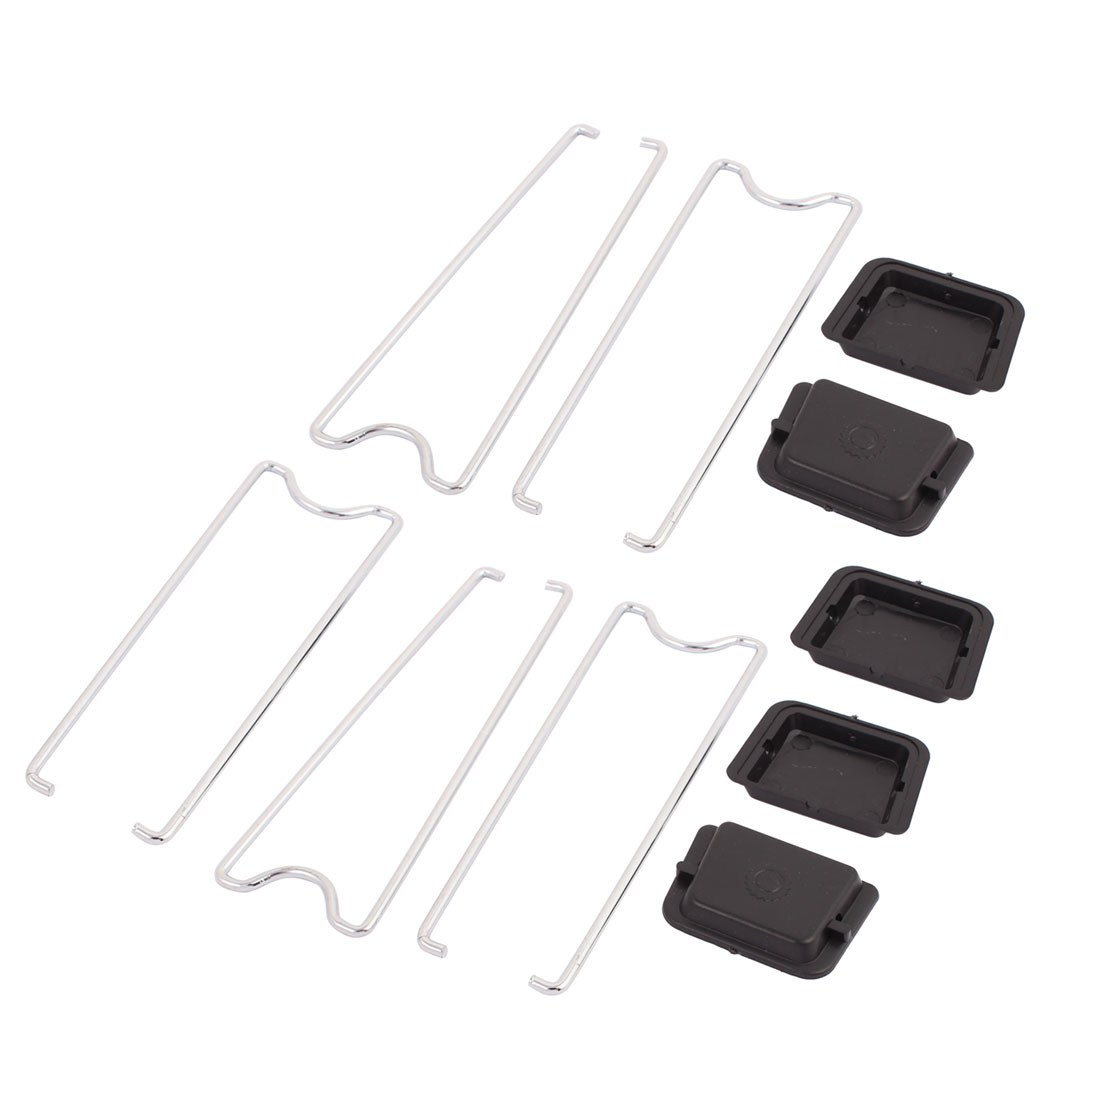 5Pcs Solar Cell Panels Parts Iron Plated Metal Stand Absorb Solar Junction Box